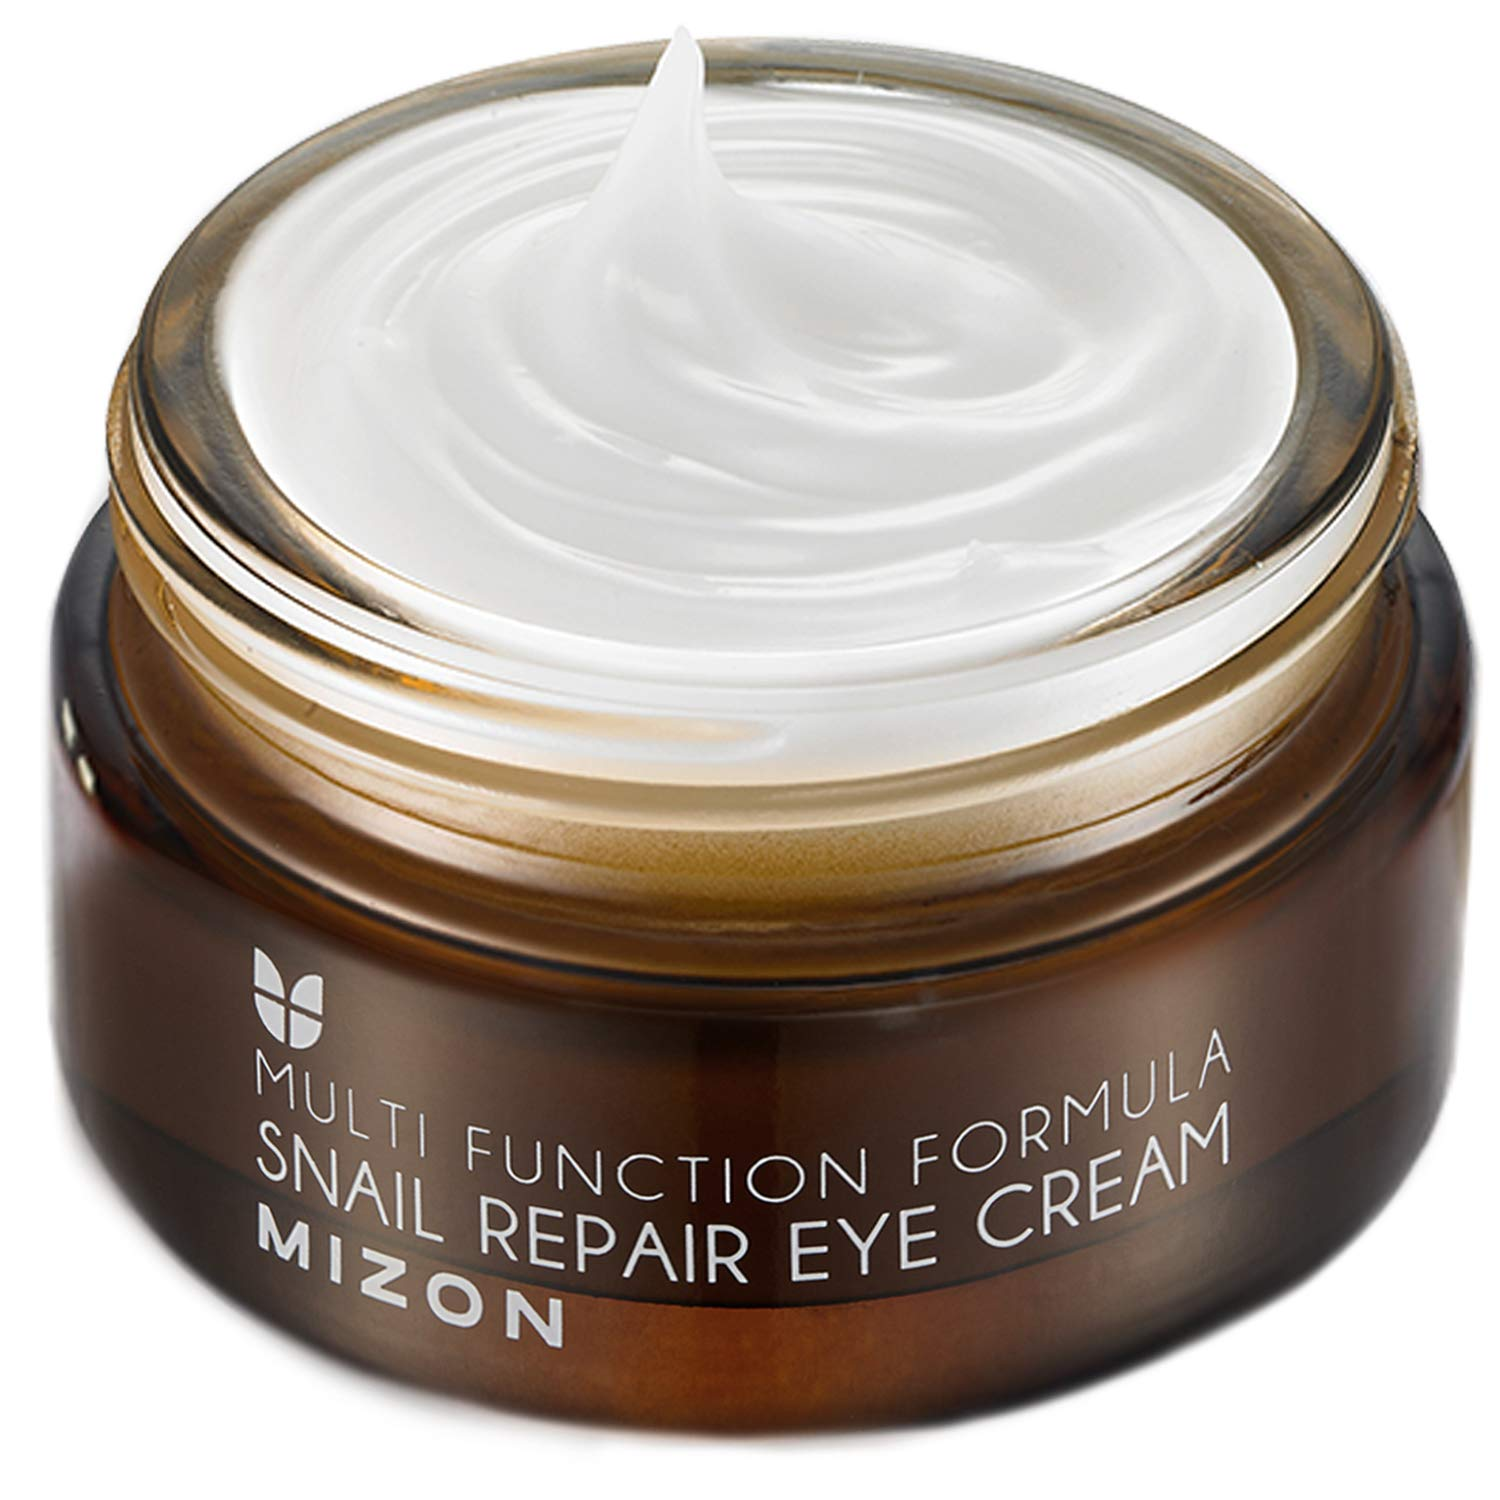 Snail Repair Eye Cream by Mizon